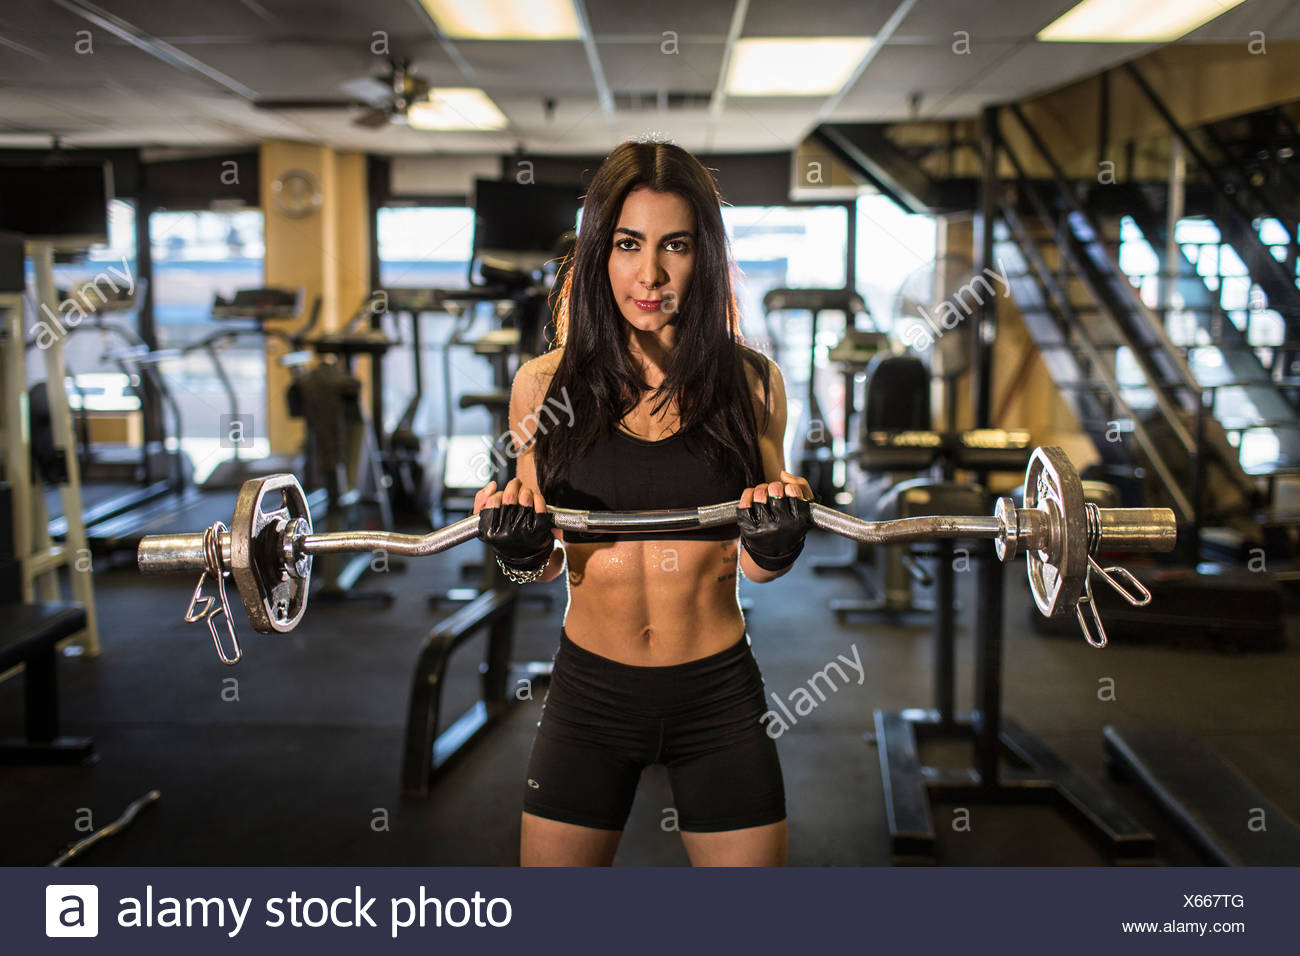 Portrait of mid adult woman weightlifting in gym Stock Photo